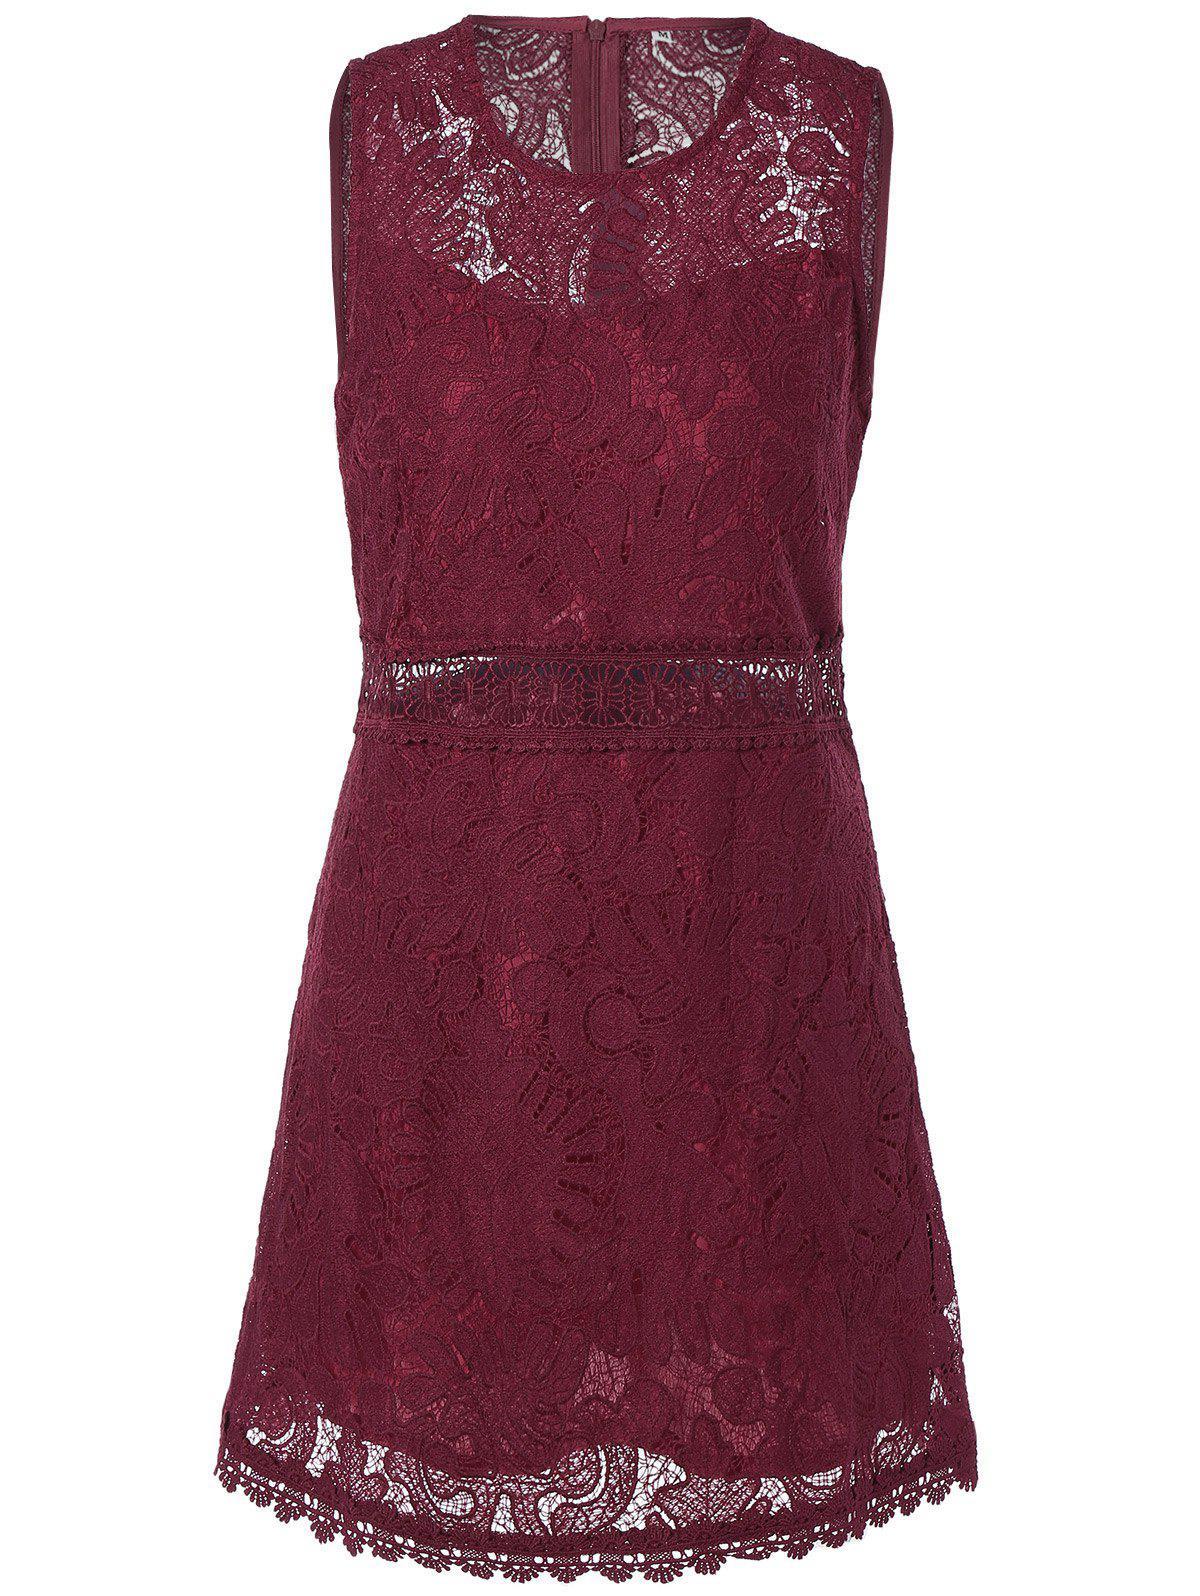 Stylish Women's Round Neck Sleeveless Solid Color Lace Dress